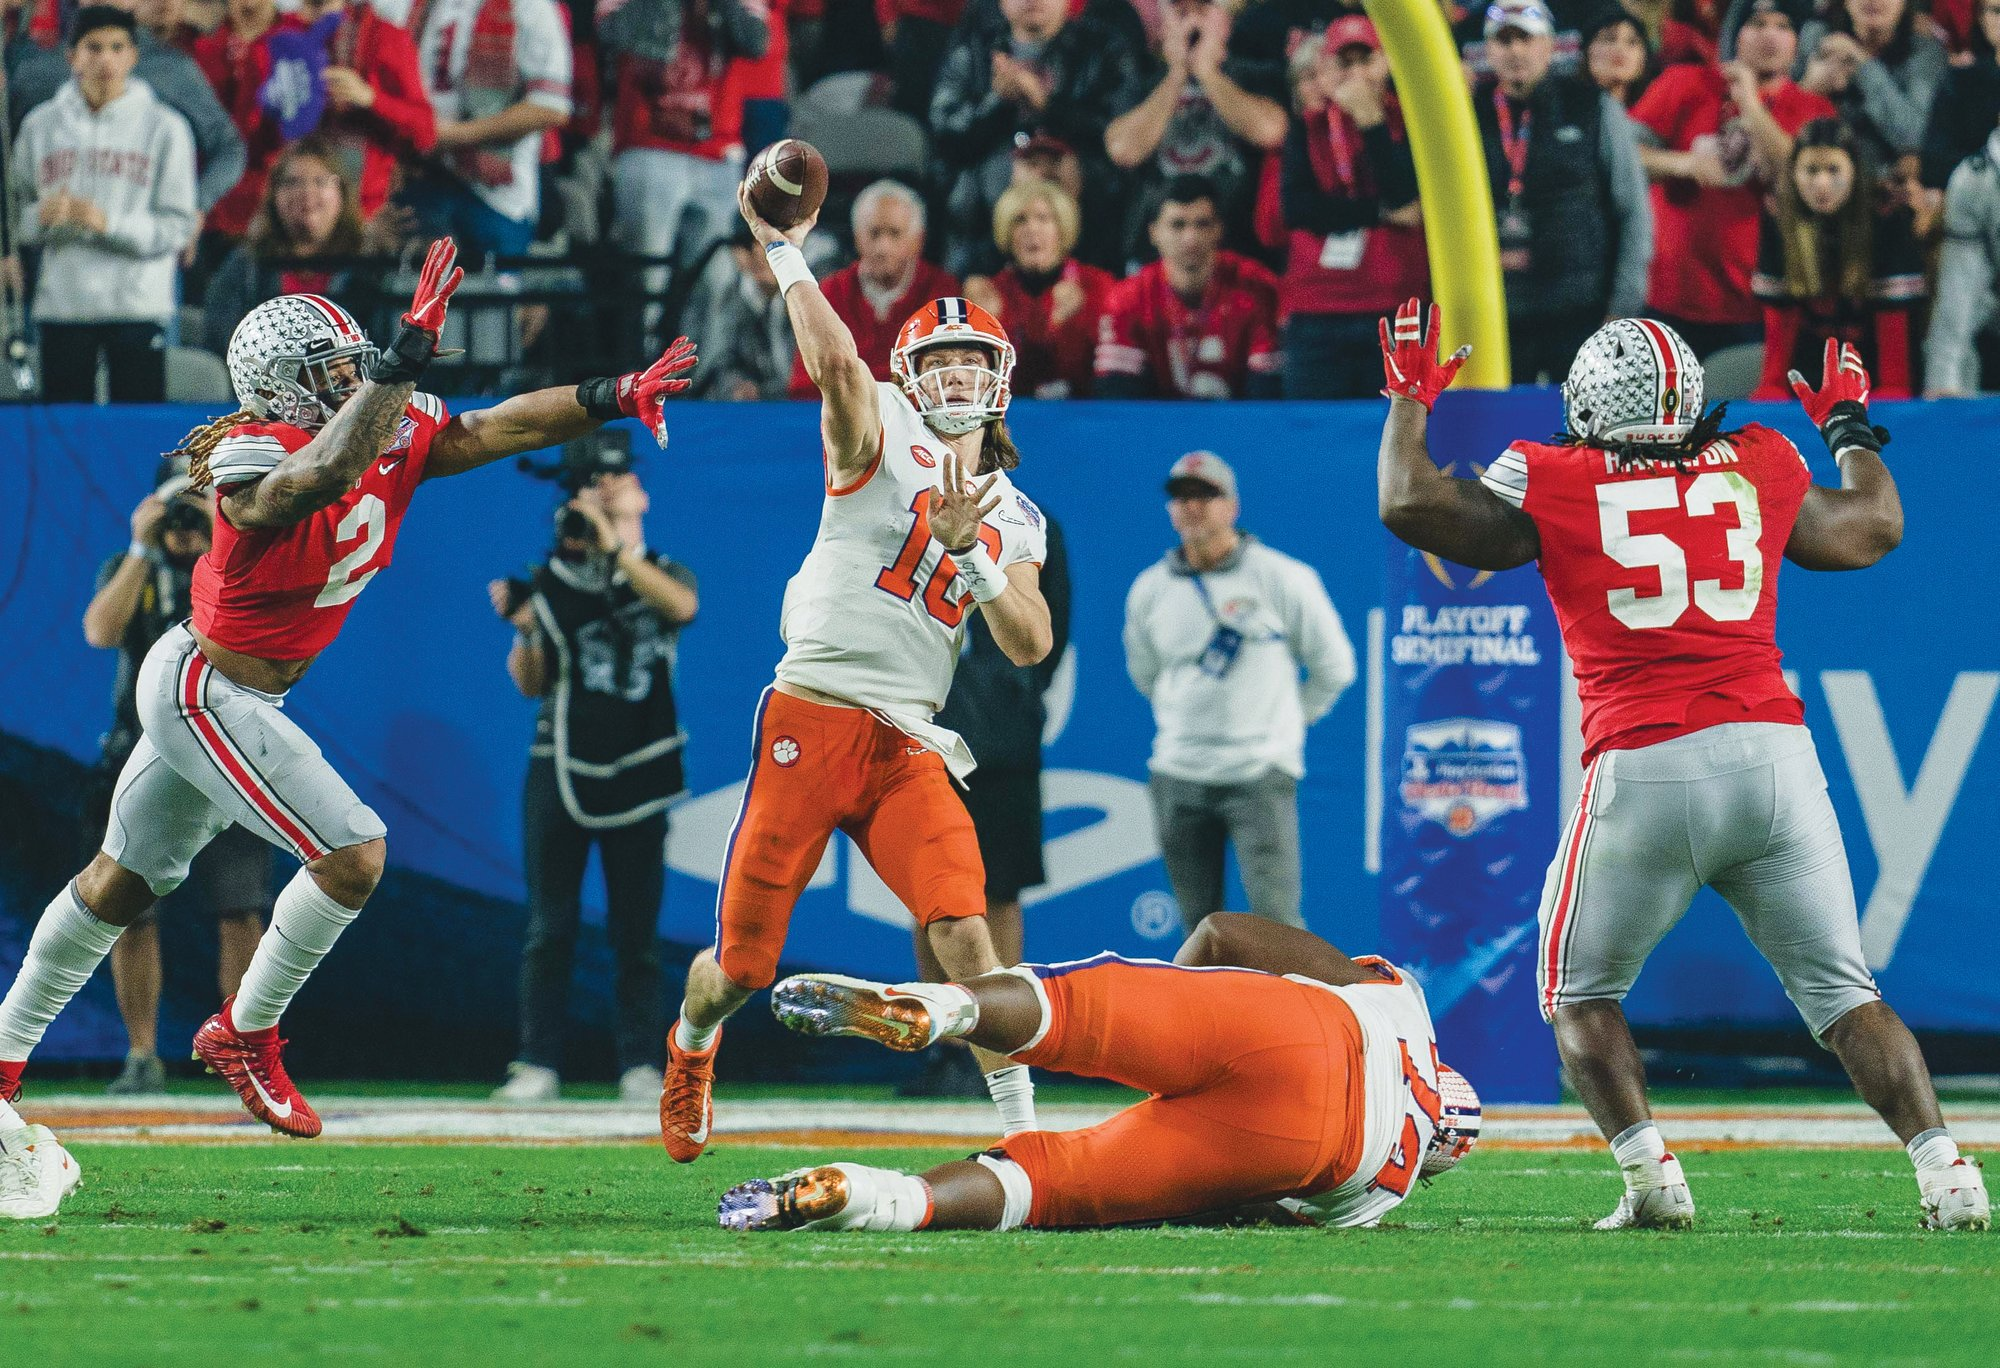 Clemson quarterback Trevor Lawrence (16) prepares to throw a pass during the Fiesta Bowl. The Tigers defeated Ohio State 29-23 to advance to the College Football Playoff national championship game on Monday against Louisiana State.